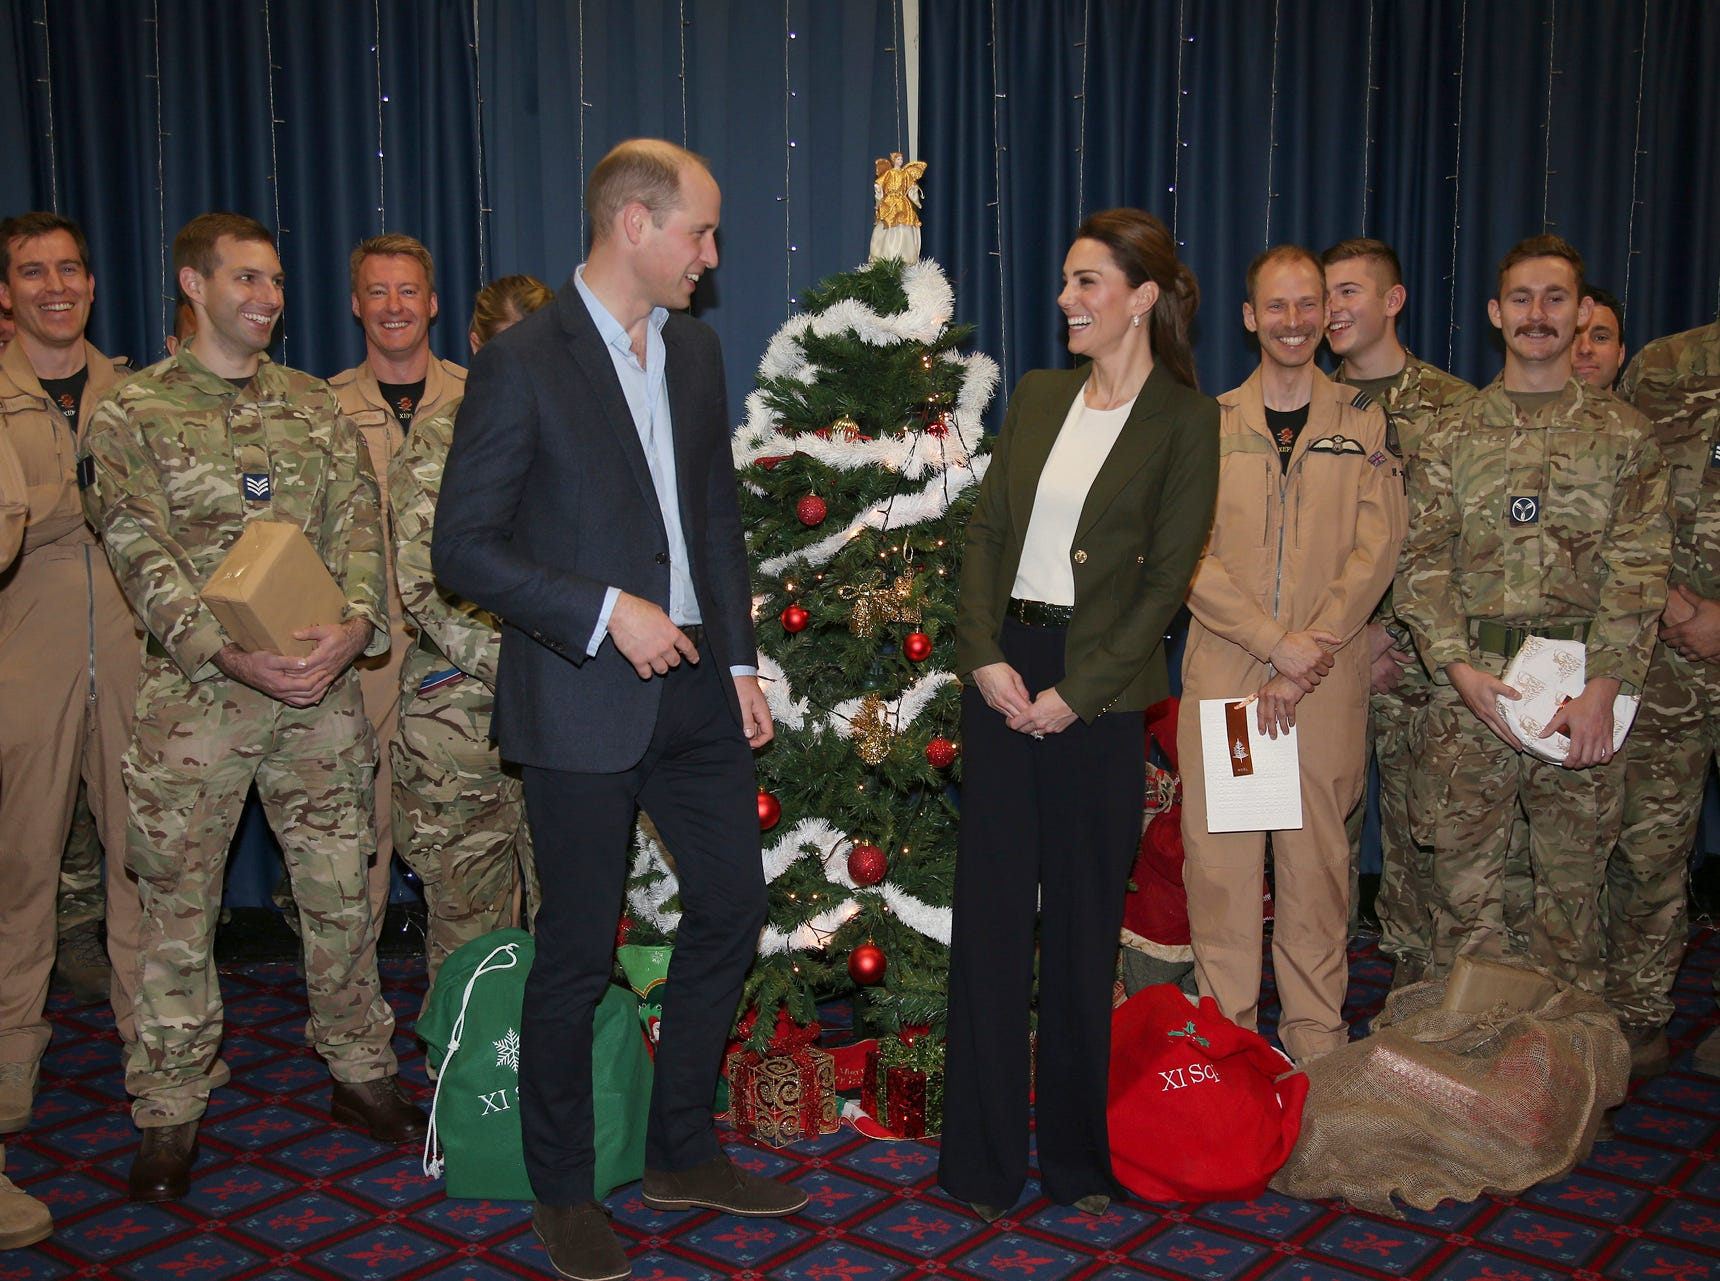 Prince William and Kate Duchess of Cambridge pose with Service Personnel during a Christmas party on RAF Akrotiri in Cyprus, as the Royal couple visit the Sergent's mess to hand out gifts Wednesday Dec. 5, 2018.  The RAF Akrotiri is the home of the Cyprus Operations Support Unit which supplies support to operations in the region to protect the UK's strategic interests. (Ian Vogler/Pool via AP) ORG XMIT: LON824